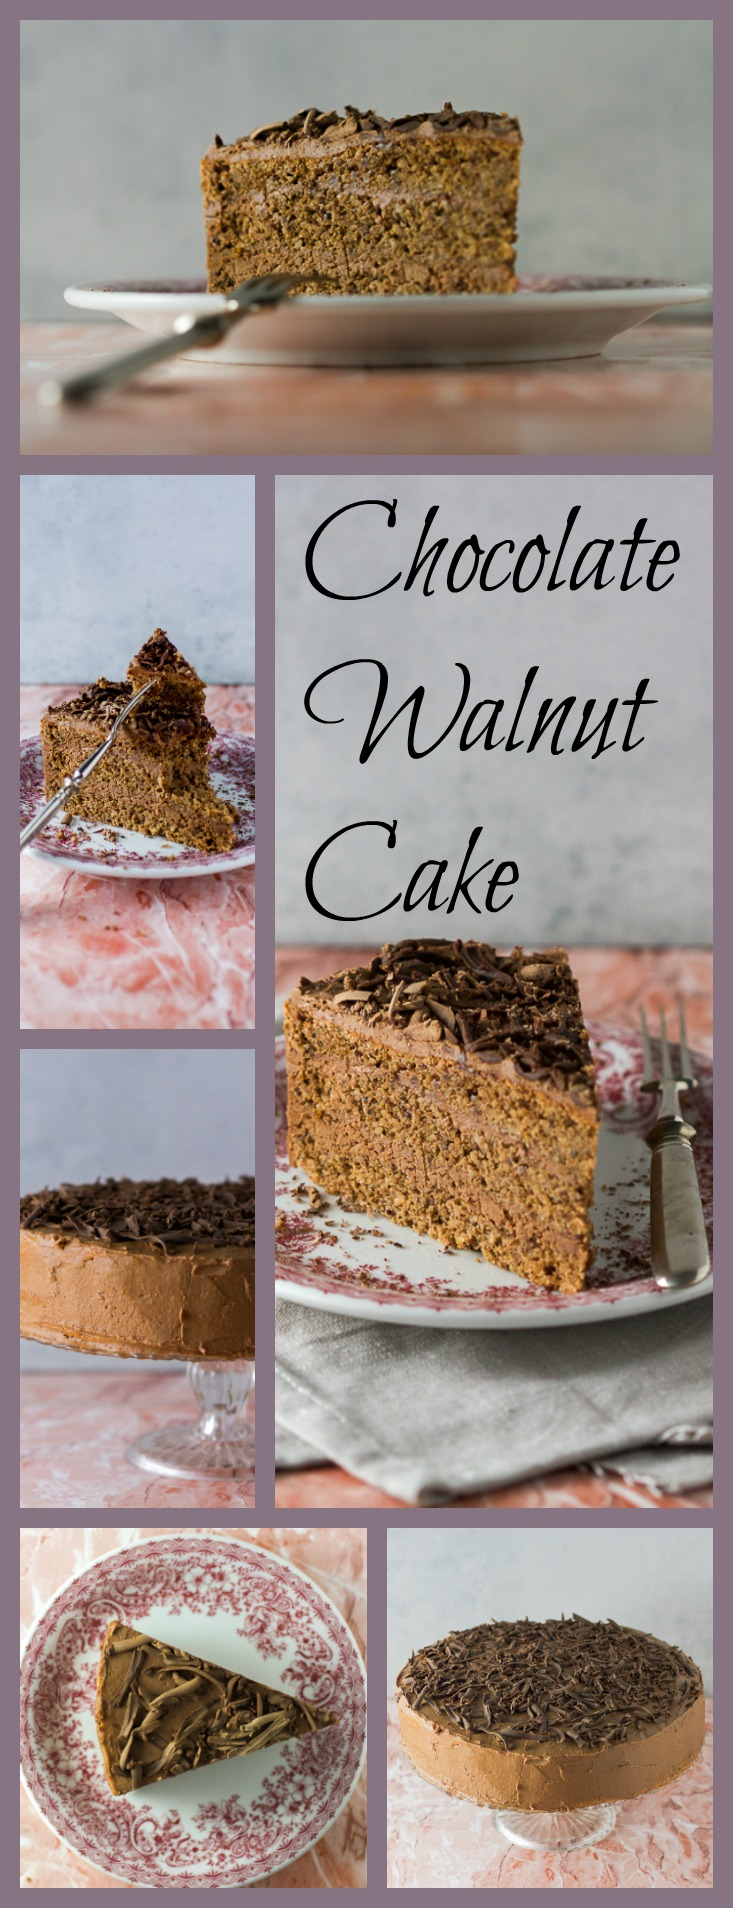 You will want to do a grab and run with this stunningly luscious, Mama's chocolate and walnut cake. It's destined to become the classic you reach for when you crave a perfect blend of chocolate filling and juicy cake in each bite.